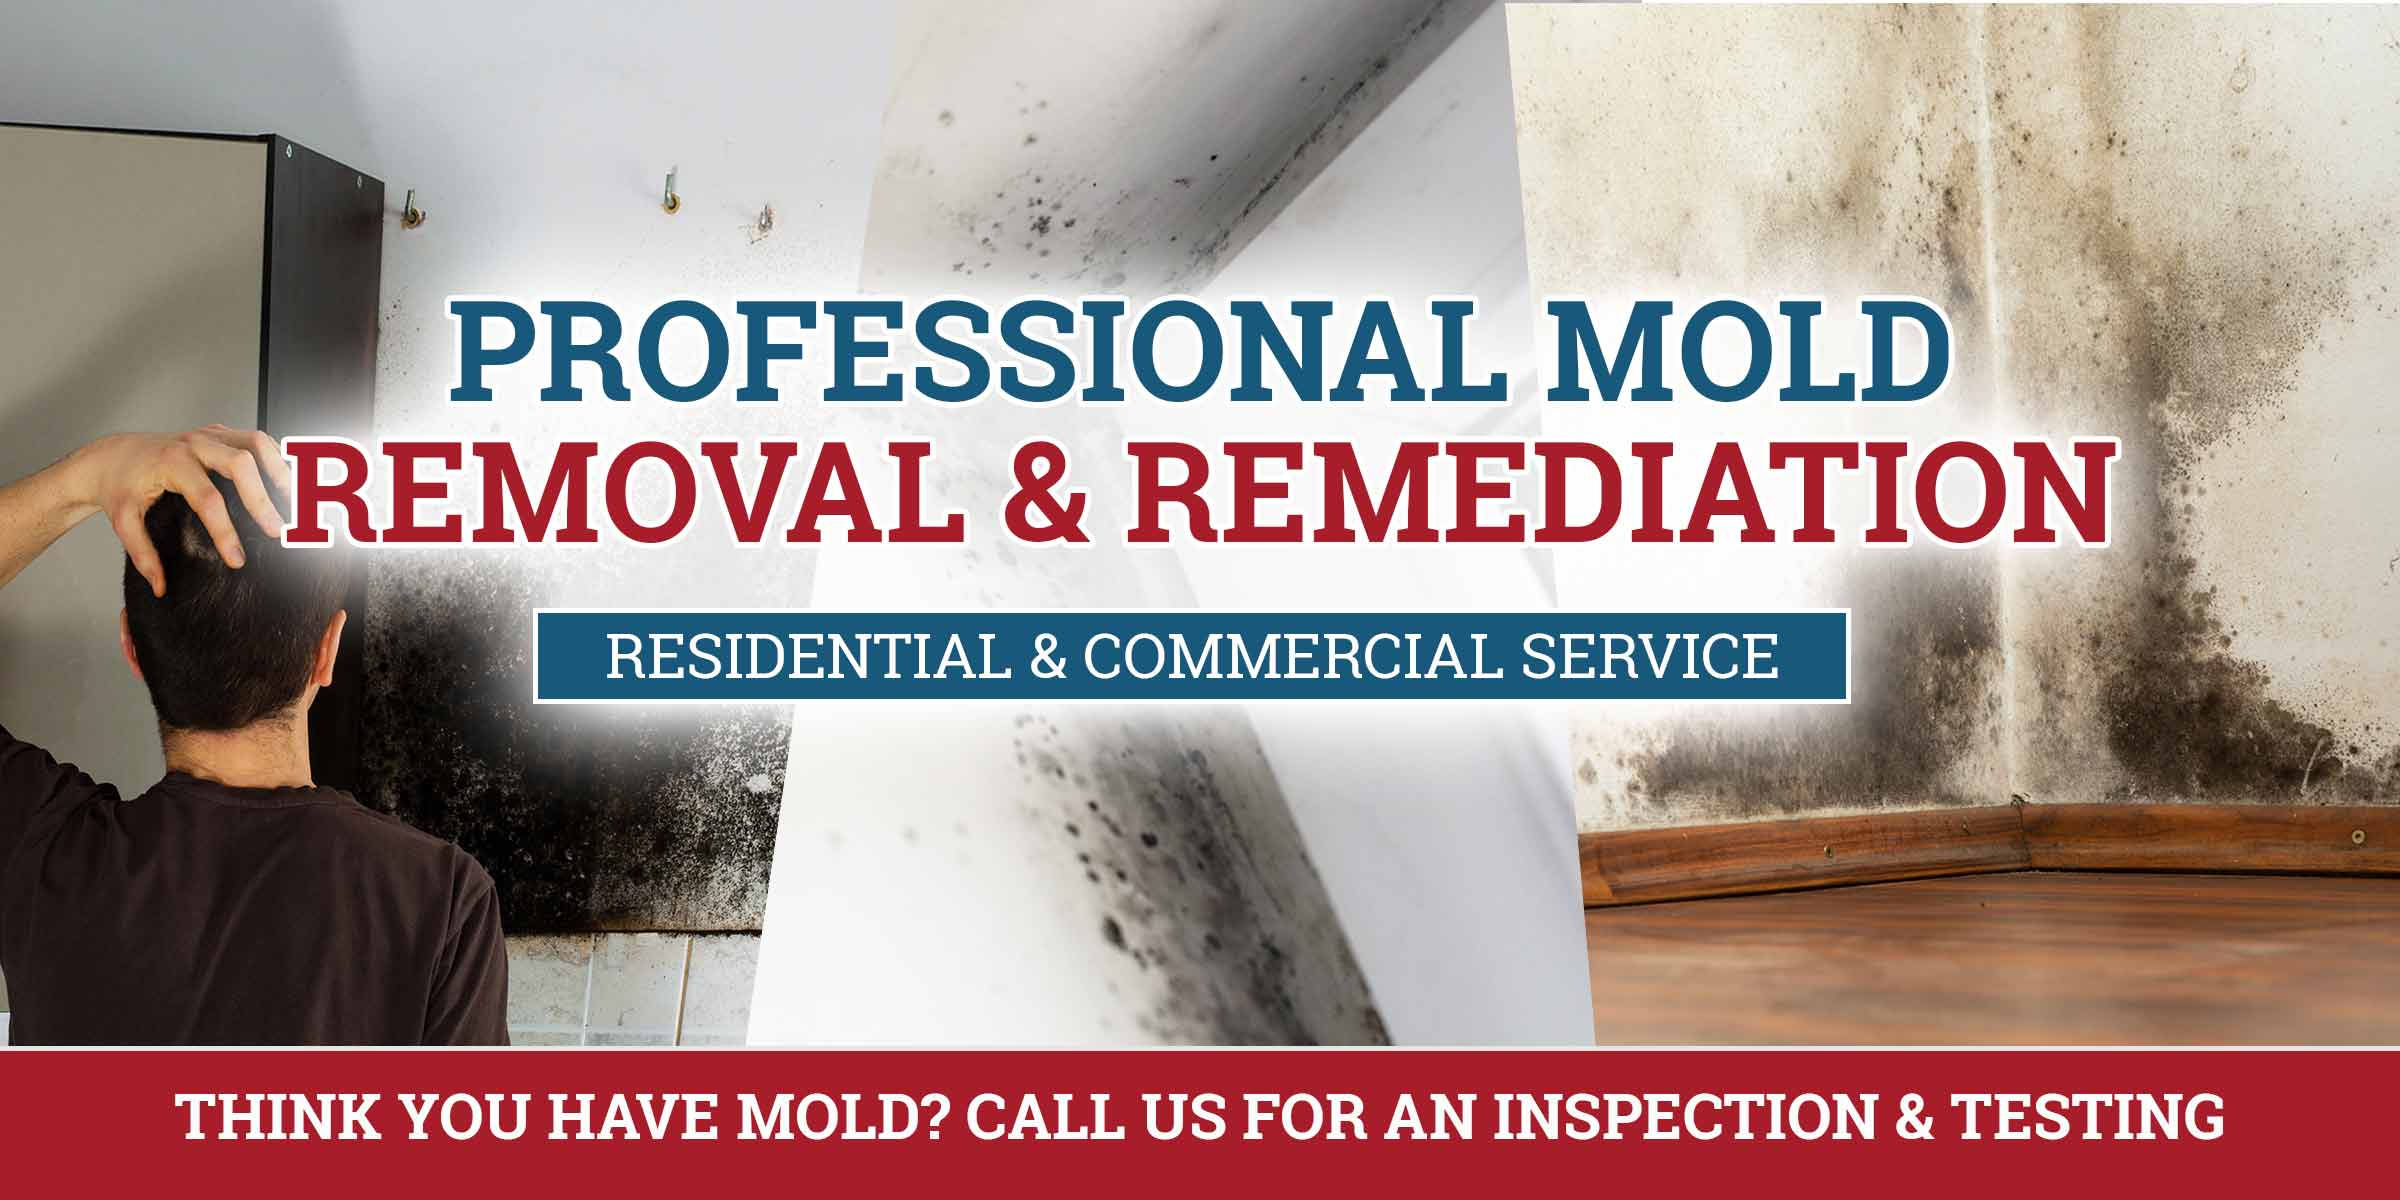 Mold Remediation & Removal - A-Z Home Services And Restoration